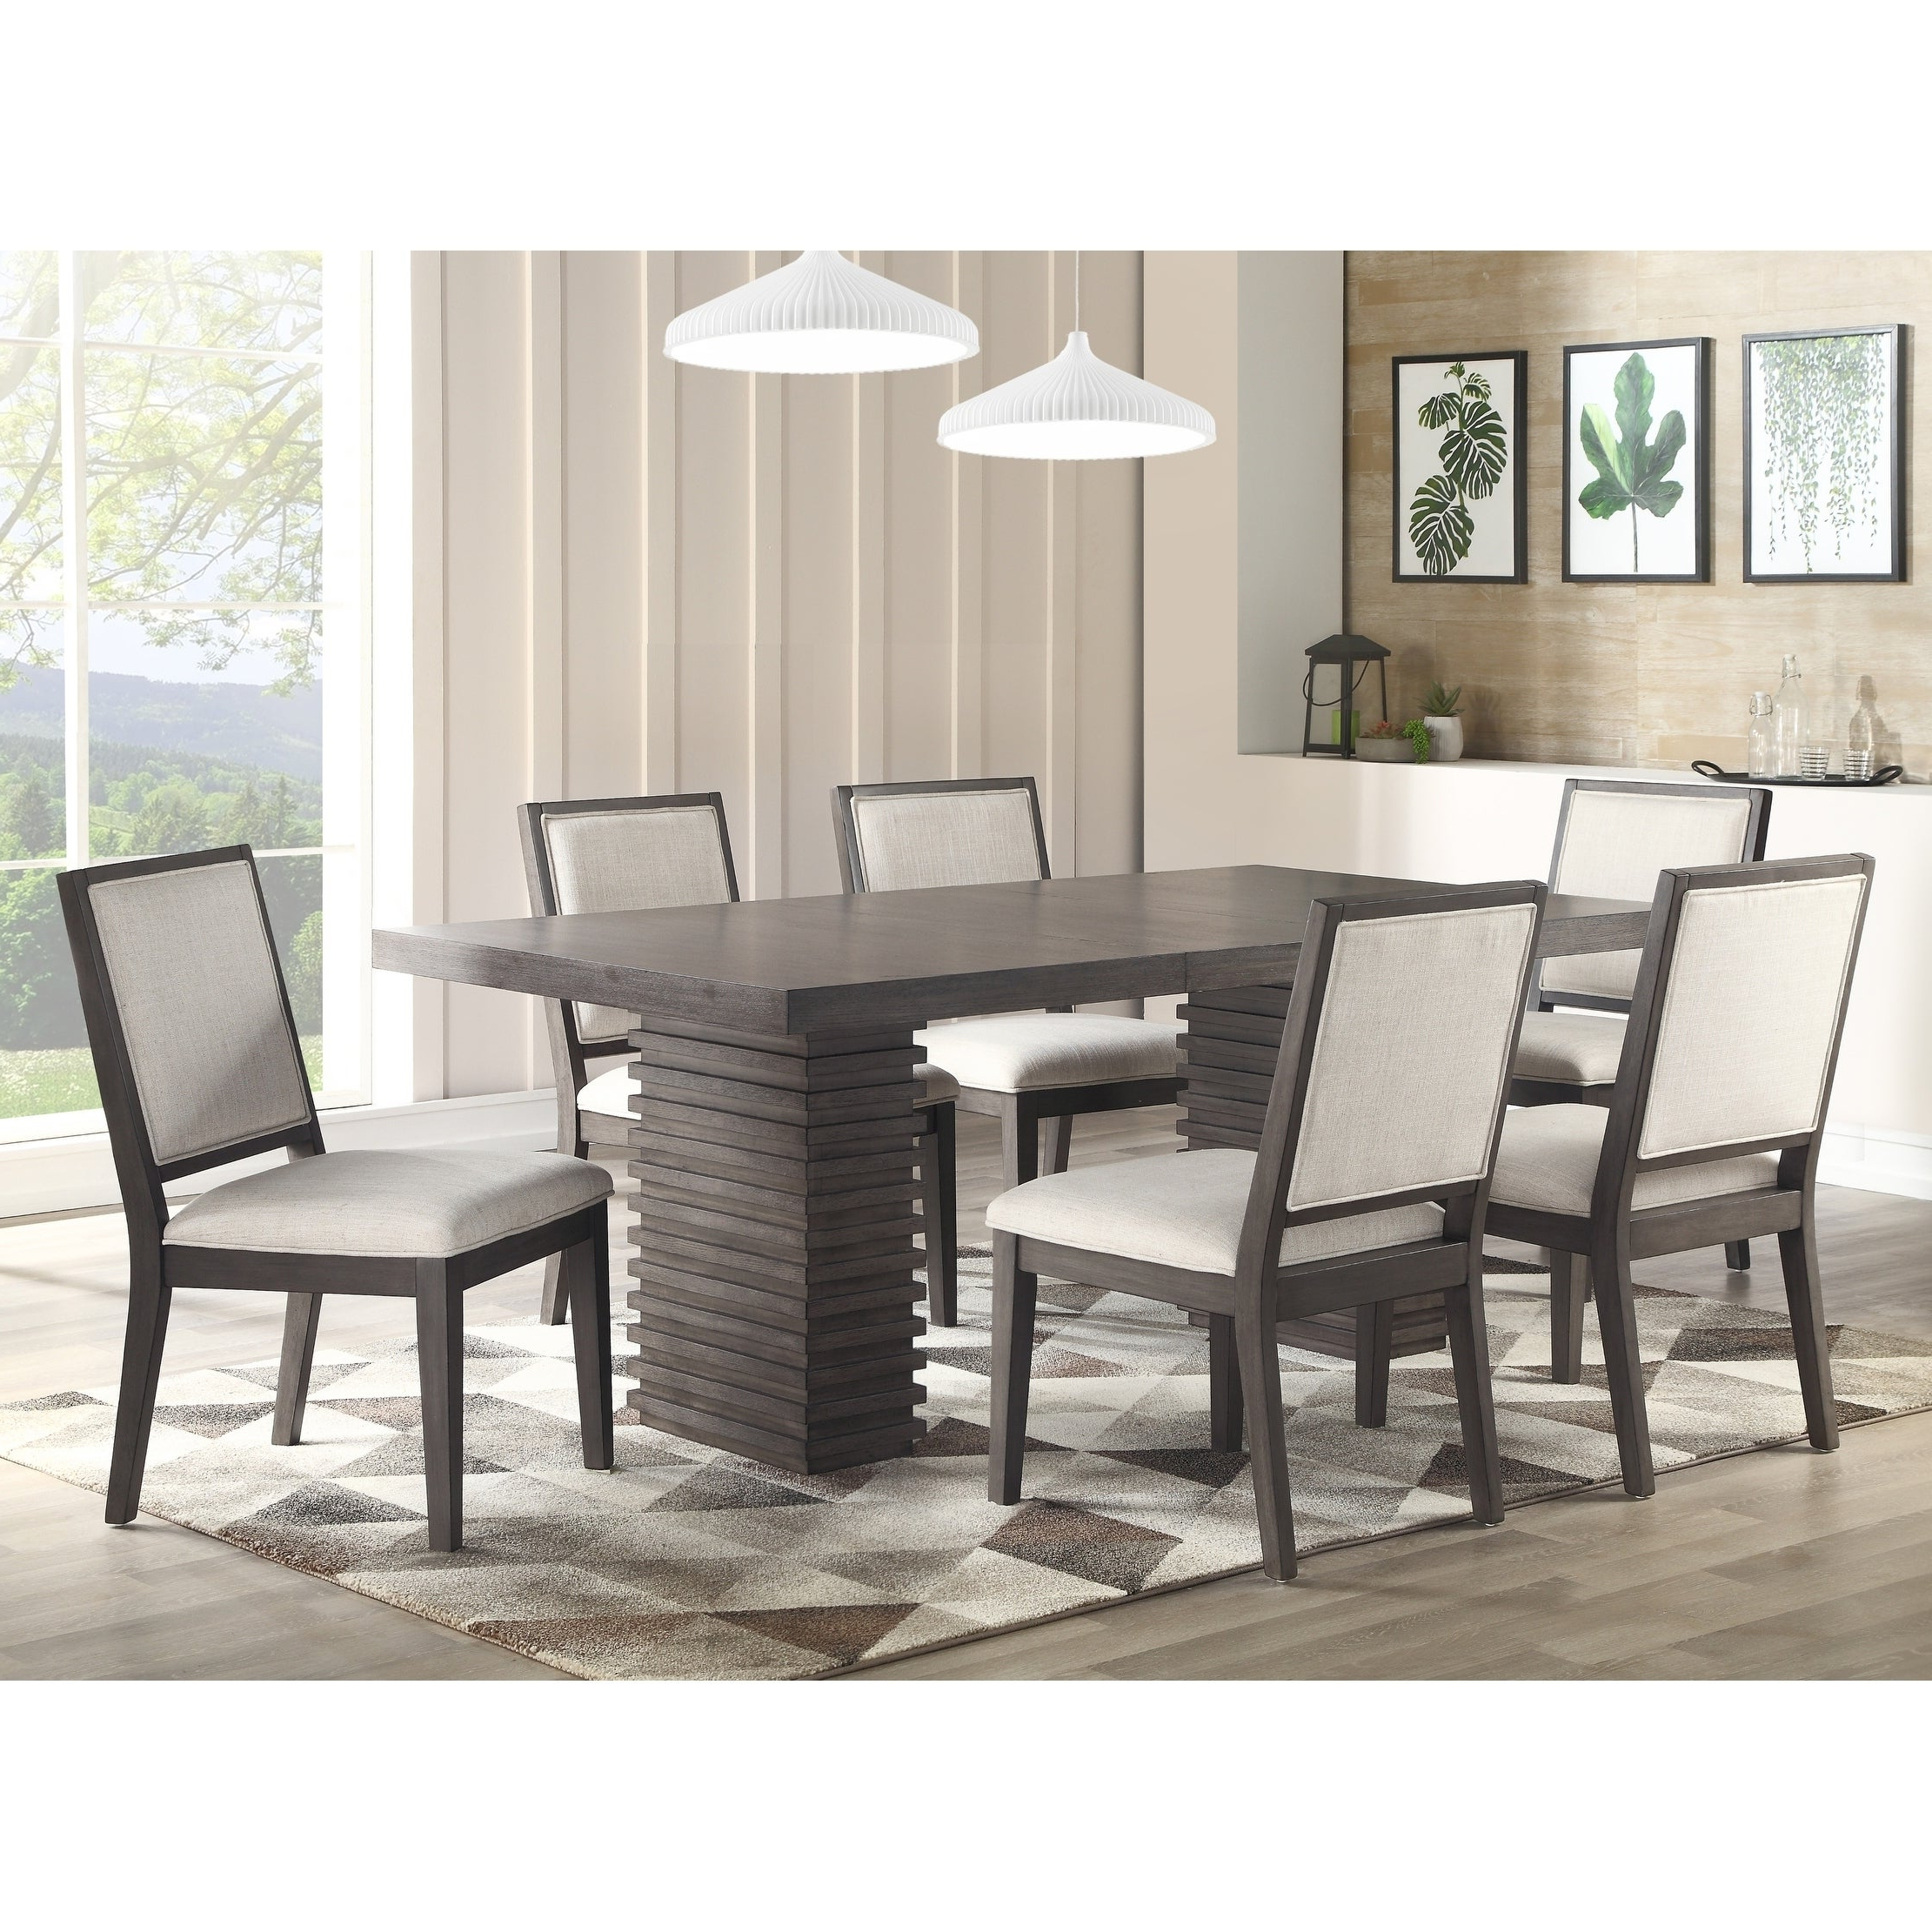 Buy 7 Piece Sets Kitchen & Dining Room Sets Online At Overstock Inside Well Liked Autberry 5 Piece Dining Sets (View 13 of 25)